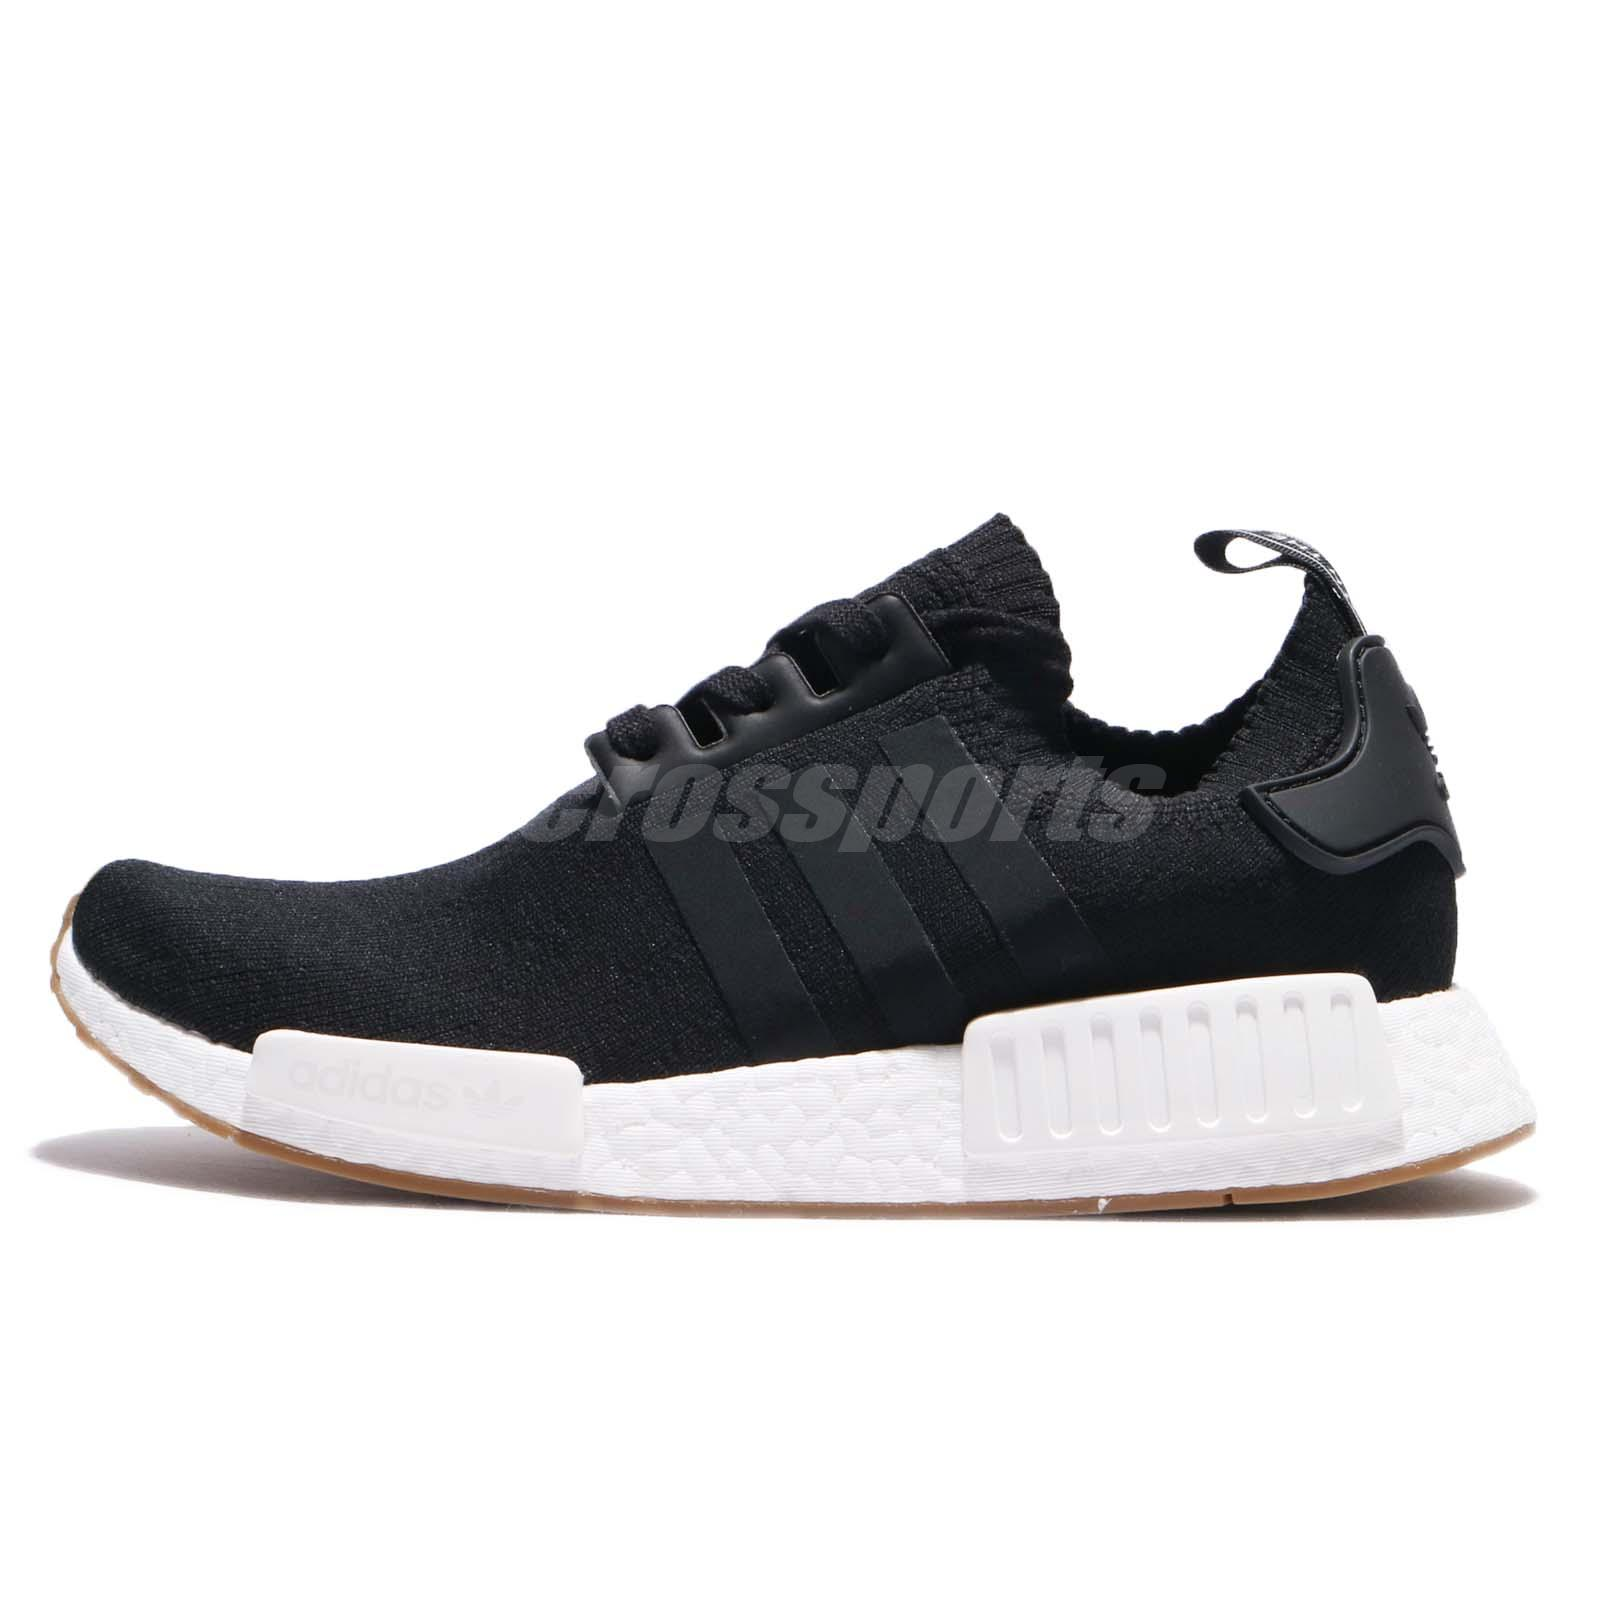 low priced 85e85 e5643 adidas Originals NMD R1 PK PrimeKnit BOOST Black Gum Men Running Sneakers  BY1887